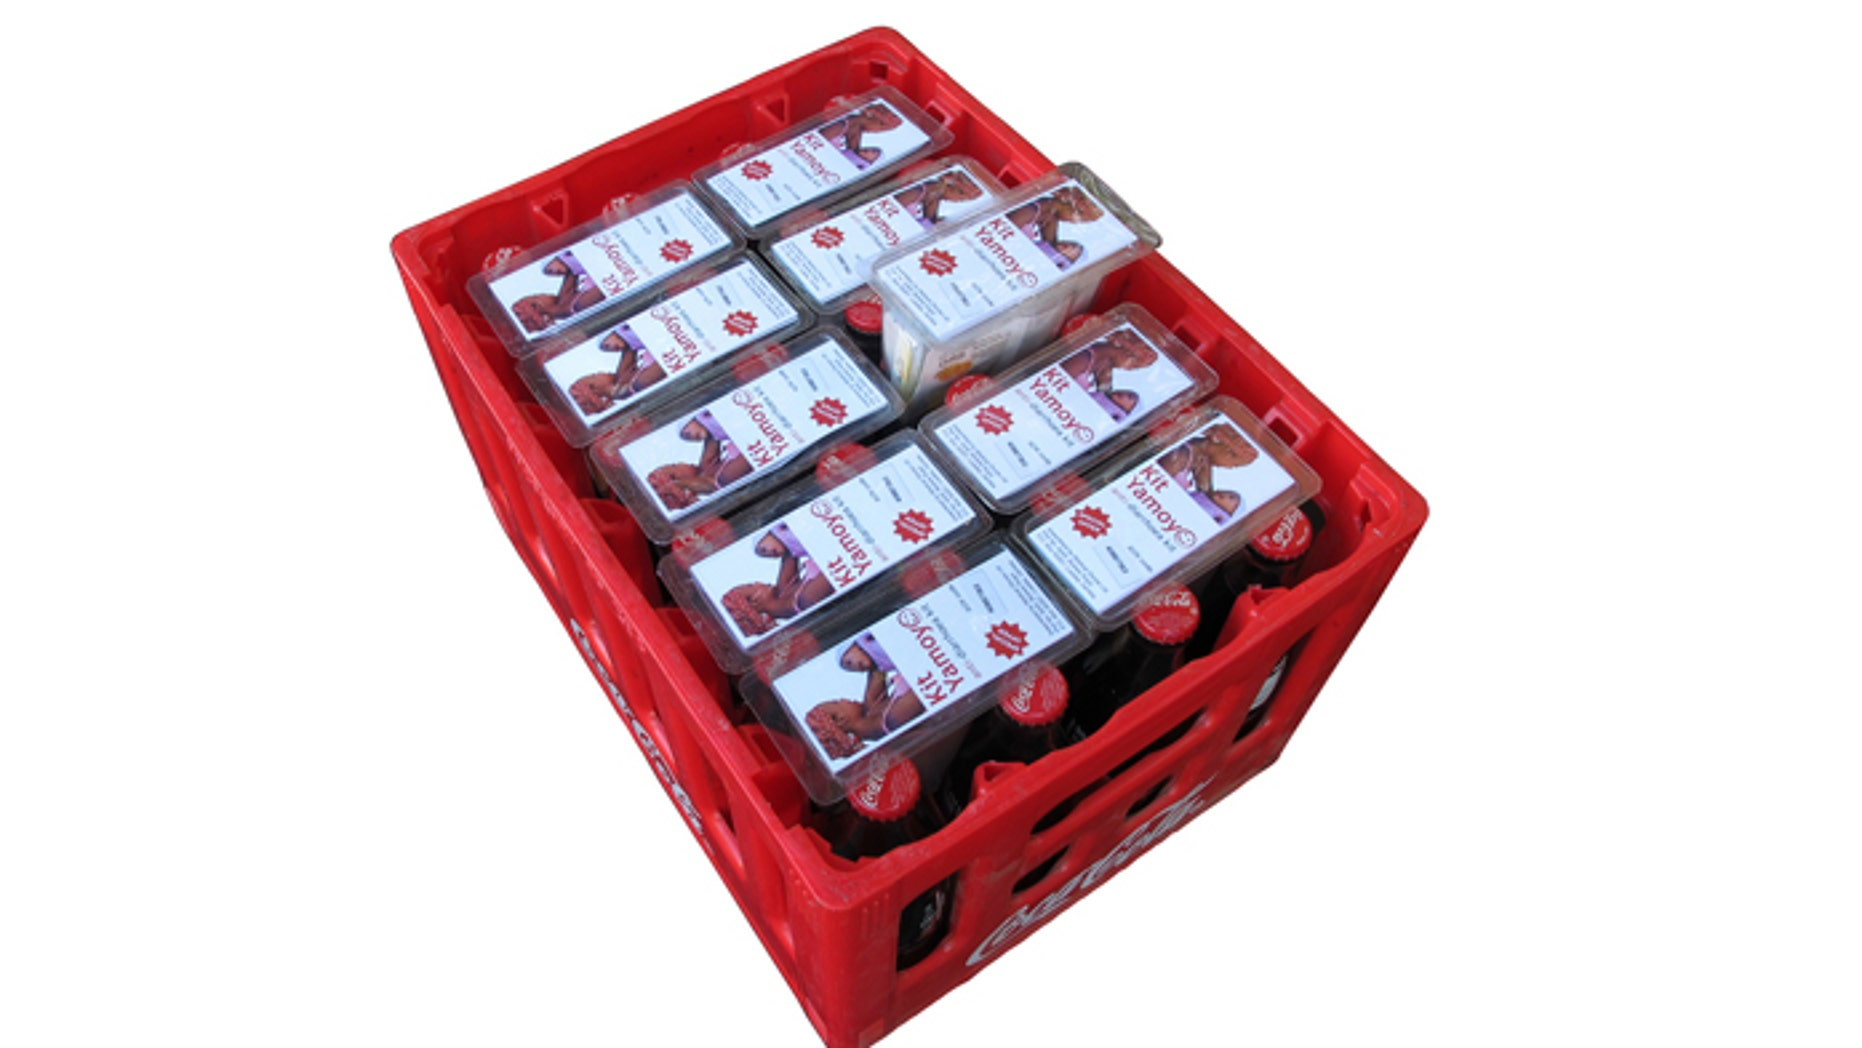 10 Kit Yamoyos fit into one crate of Coca-Cola and make use of the unused space between the necks of the bottles.